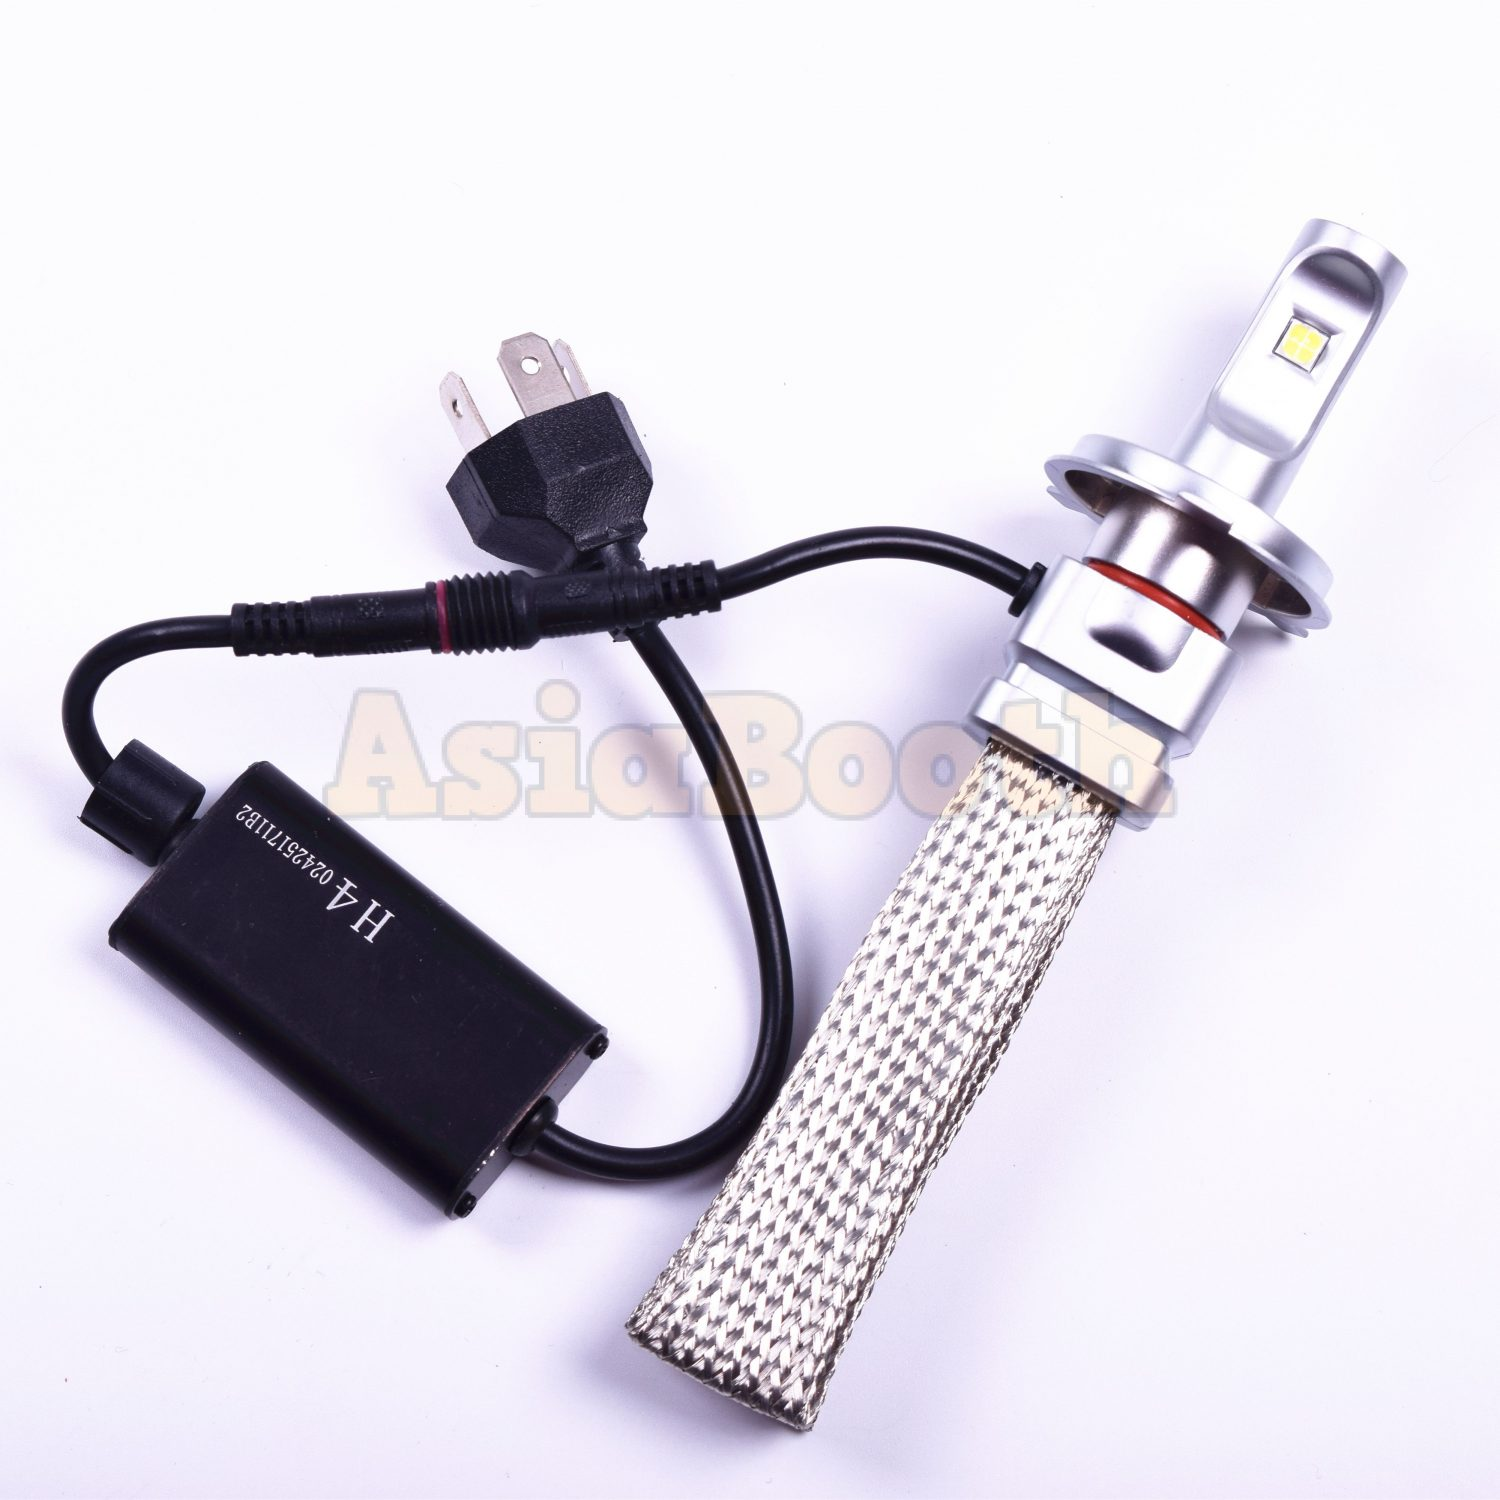 ledway led conversion kit for headlight foglight h4 h l asia booth rh asiabooth com